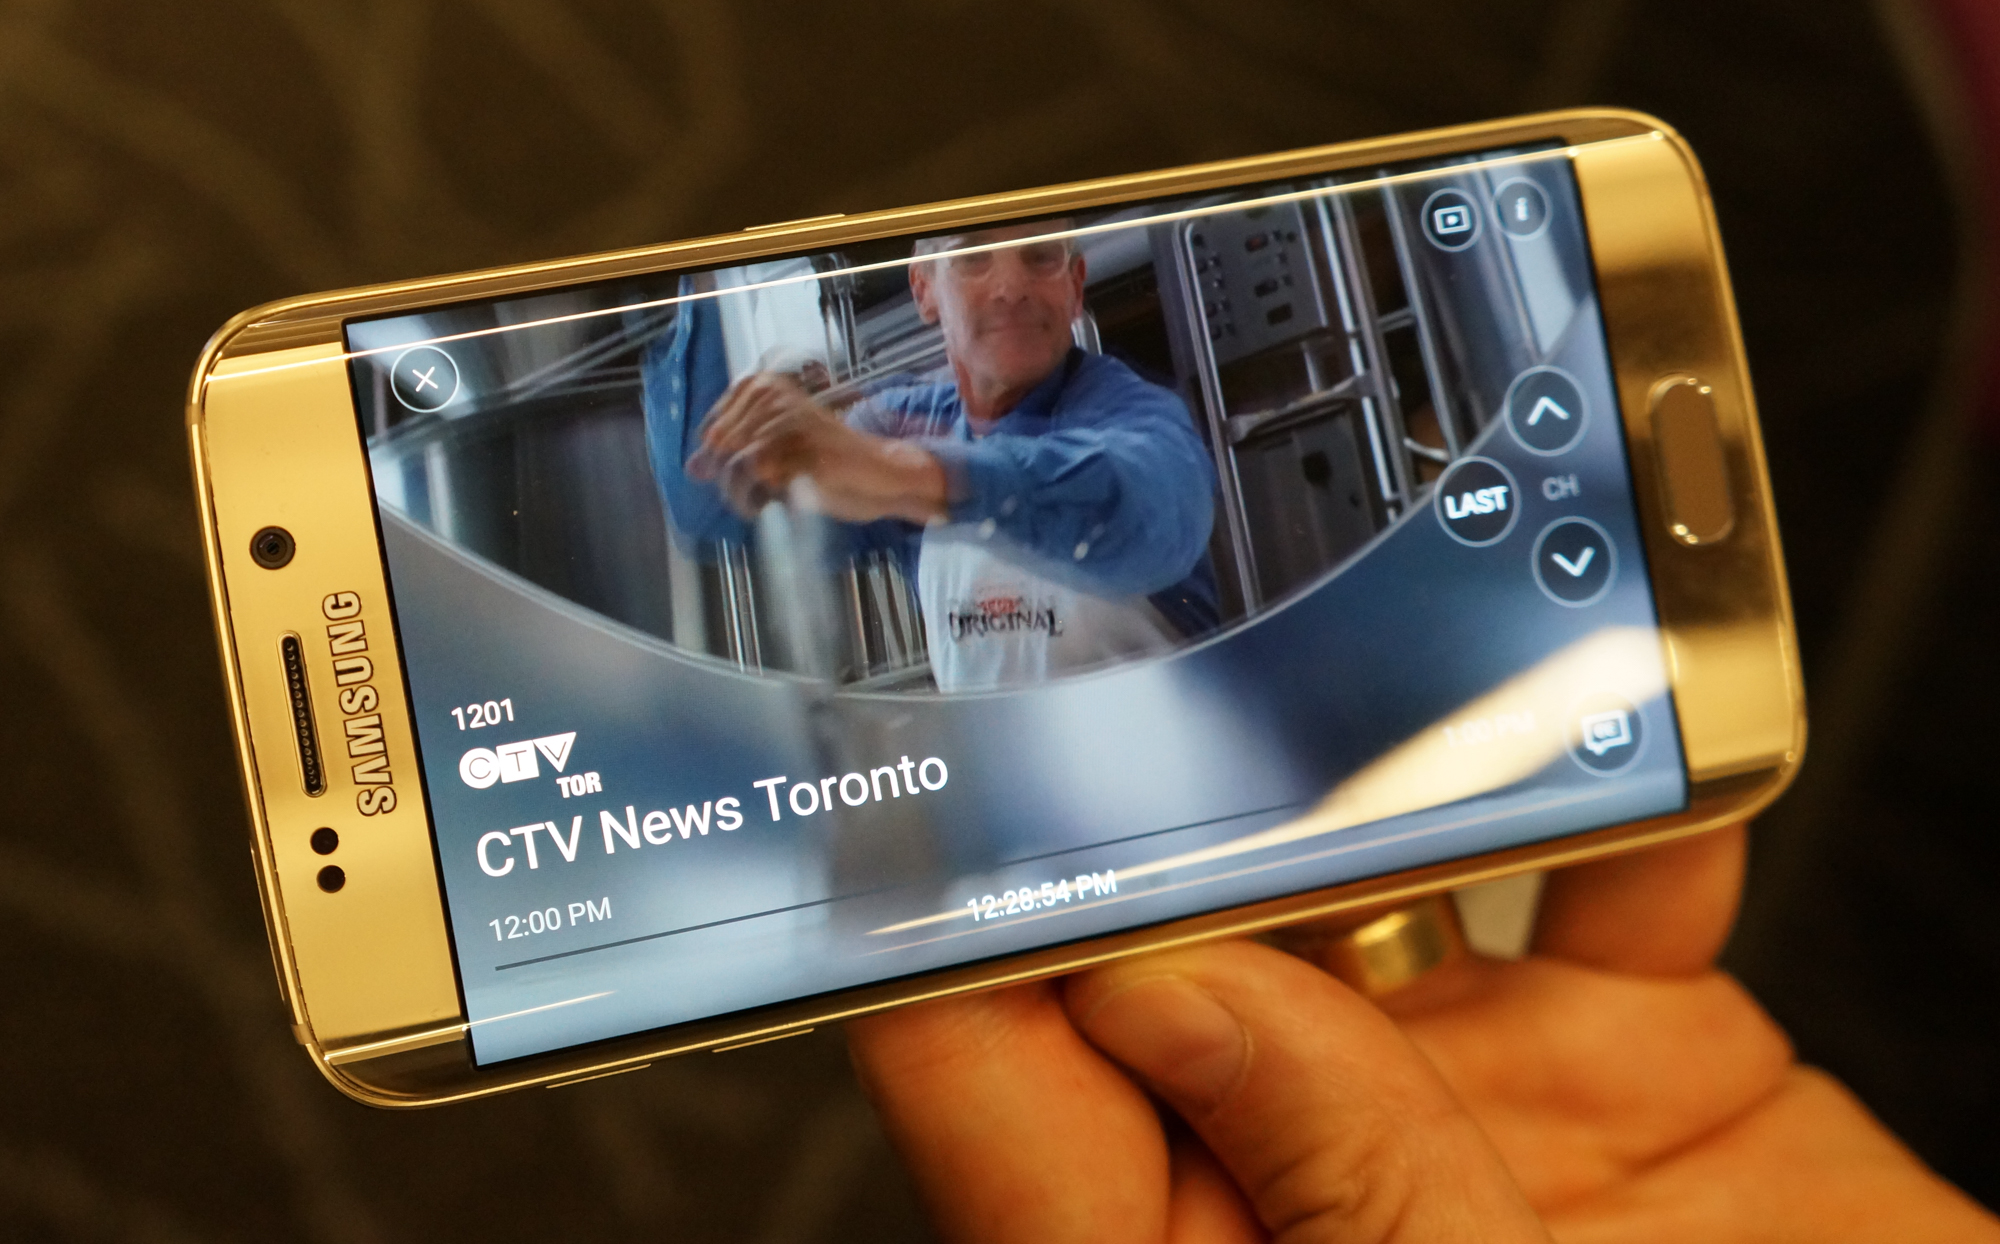 Bell aims to turn tablet into television with new Fibe TV